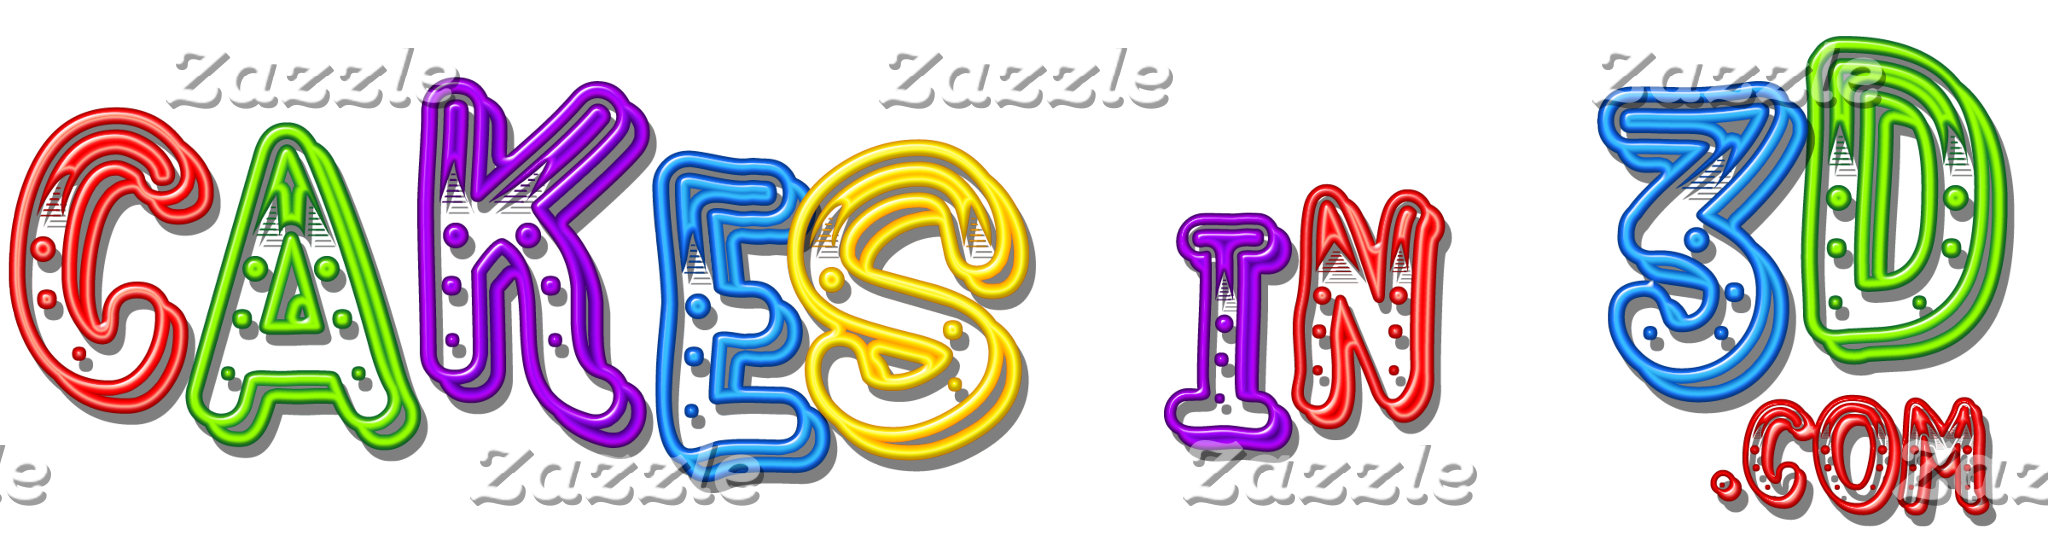 The Cakes in 3D logo 4